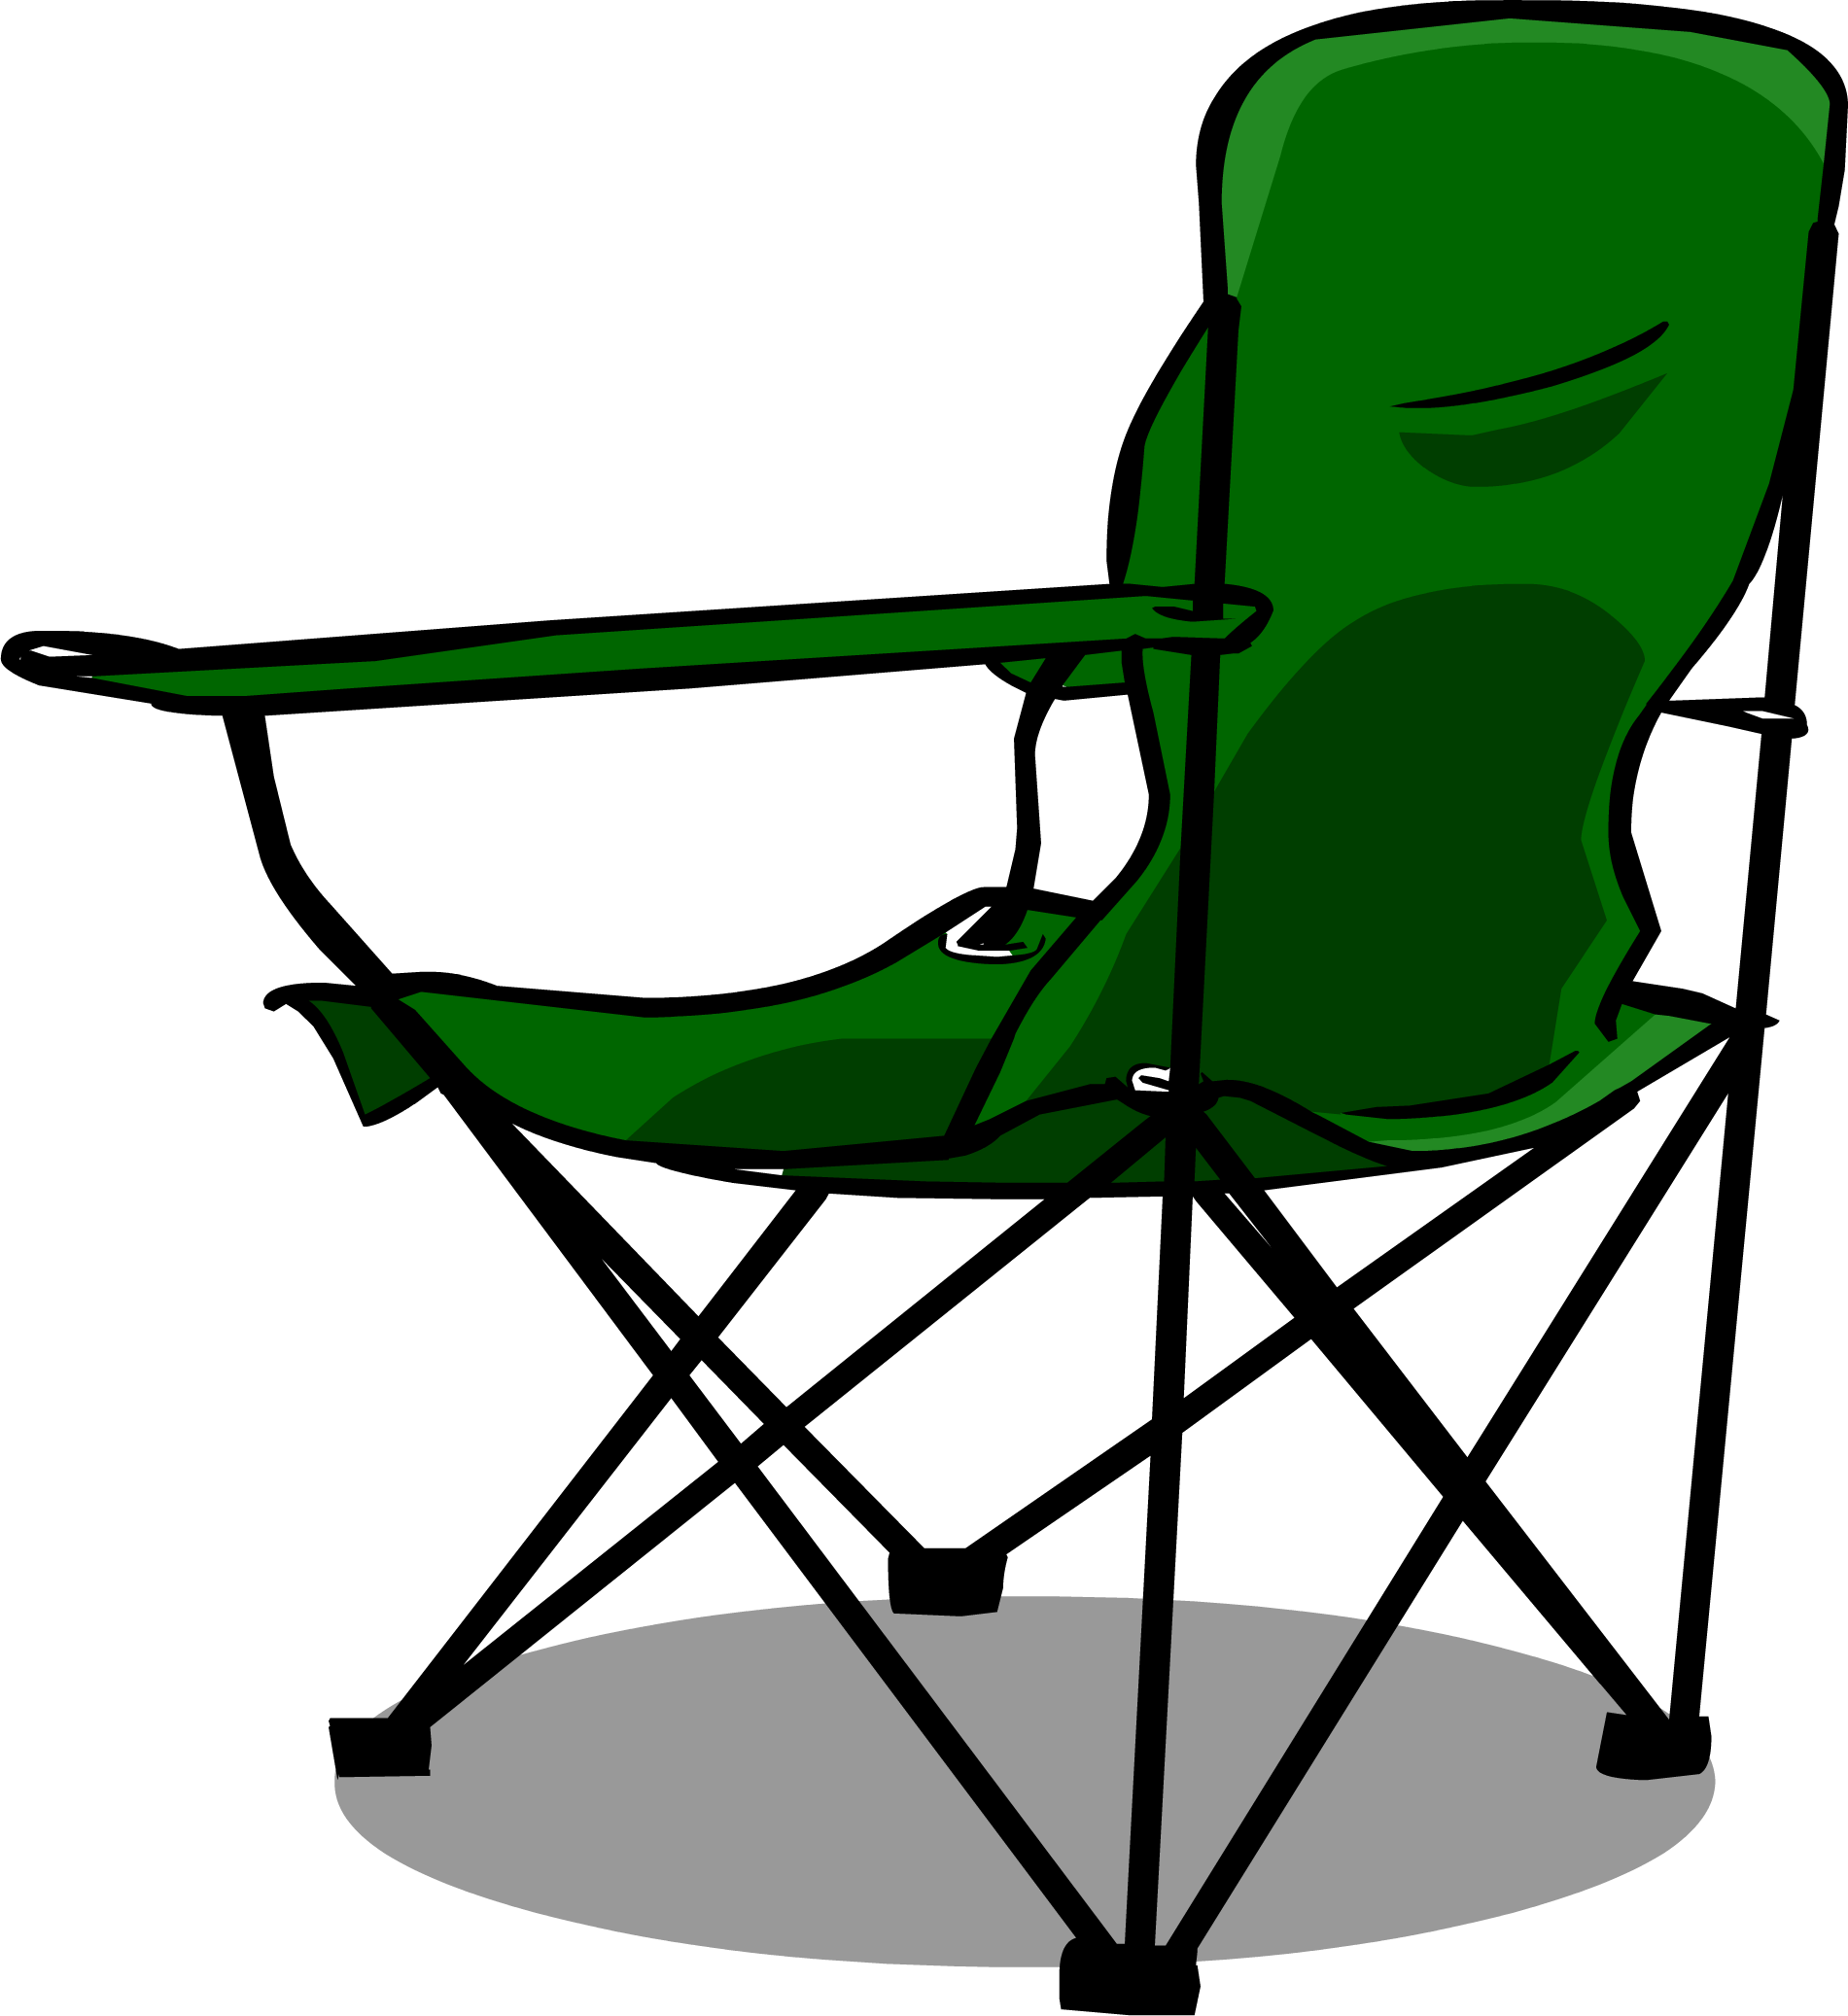 Hot clipart chair. Image camping sprite png